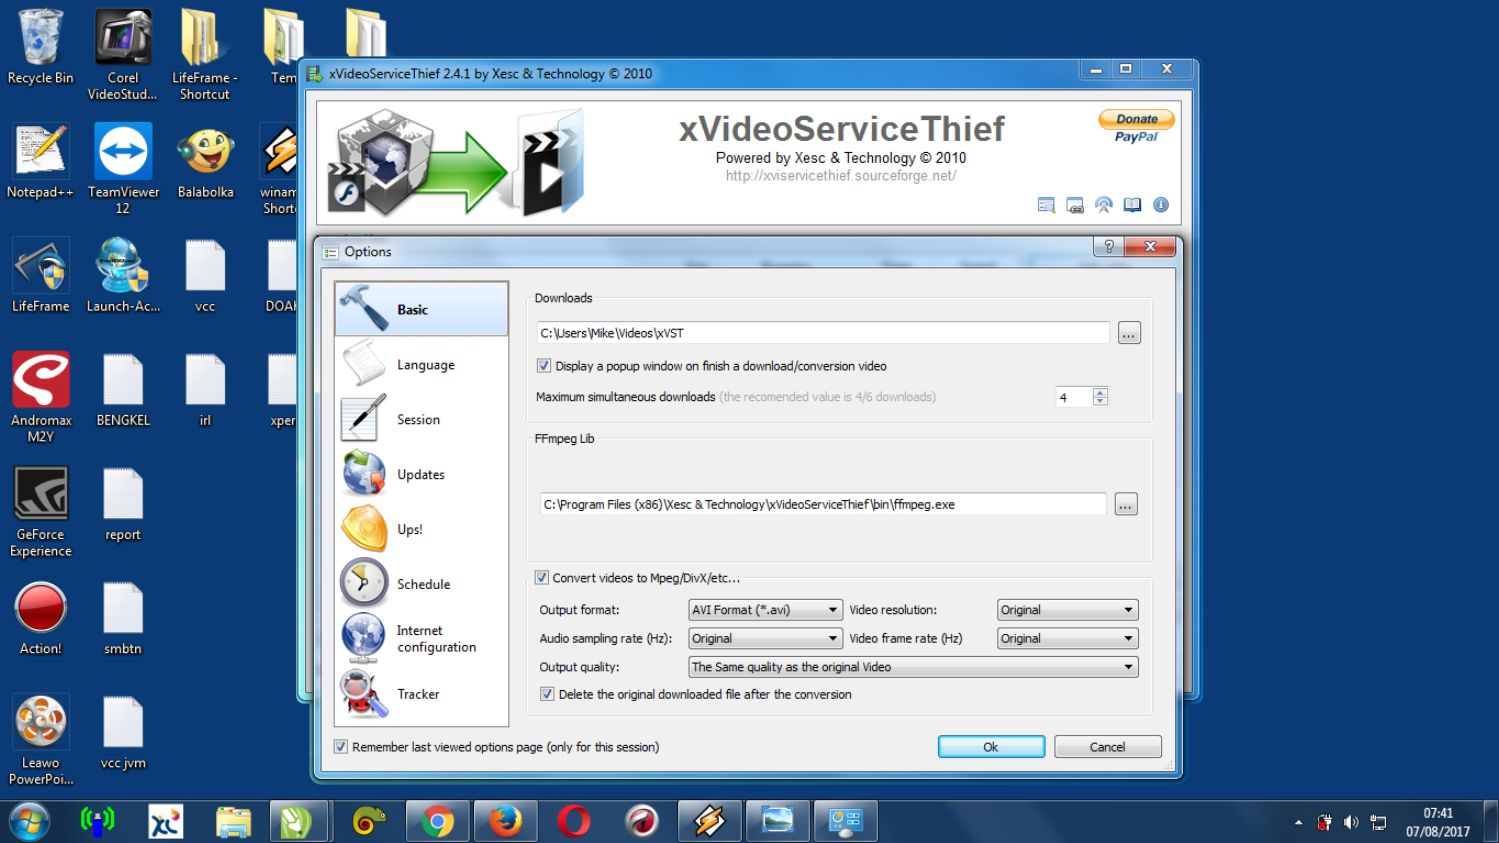 Xvideoservicethief S